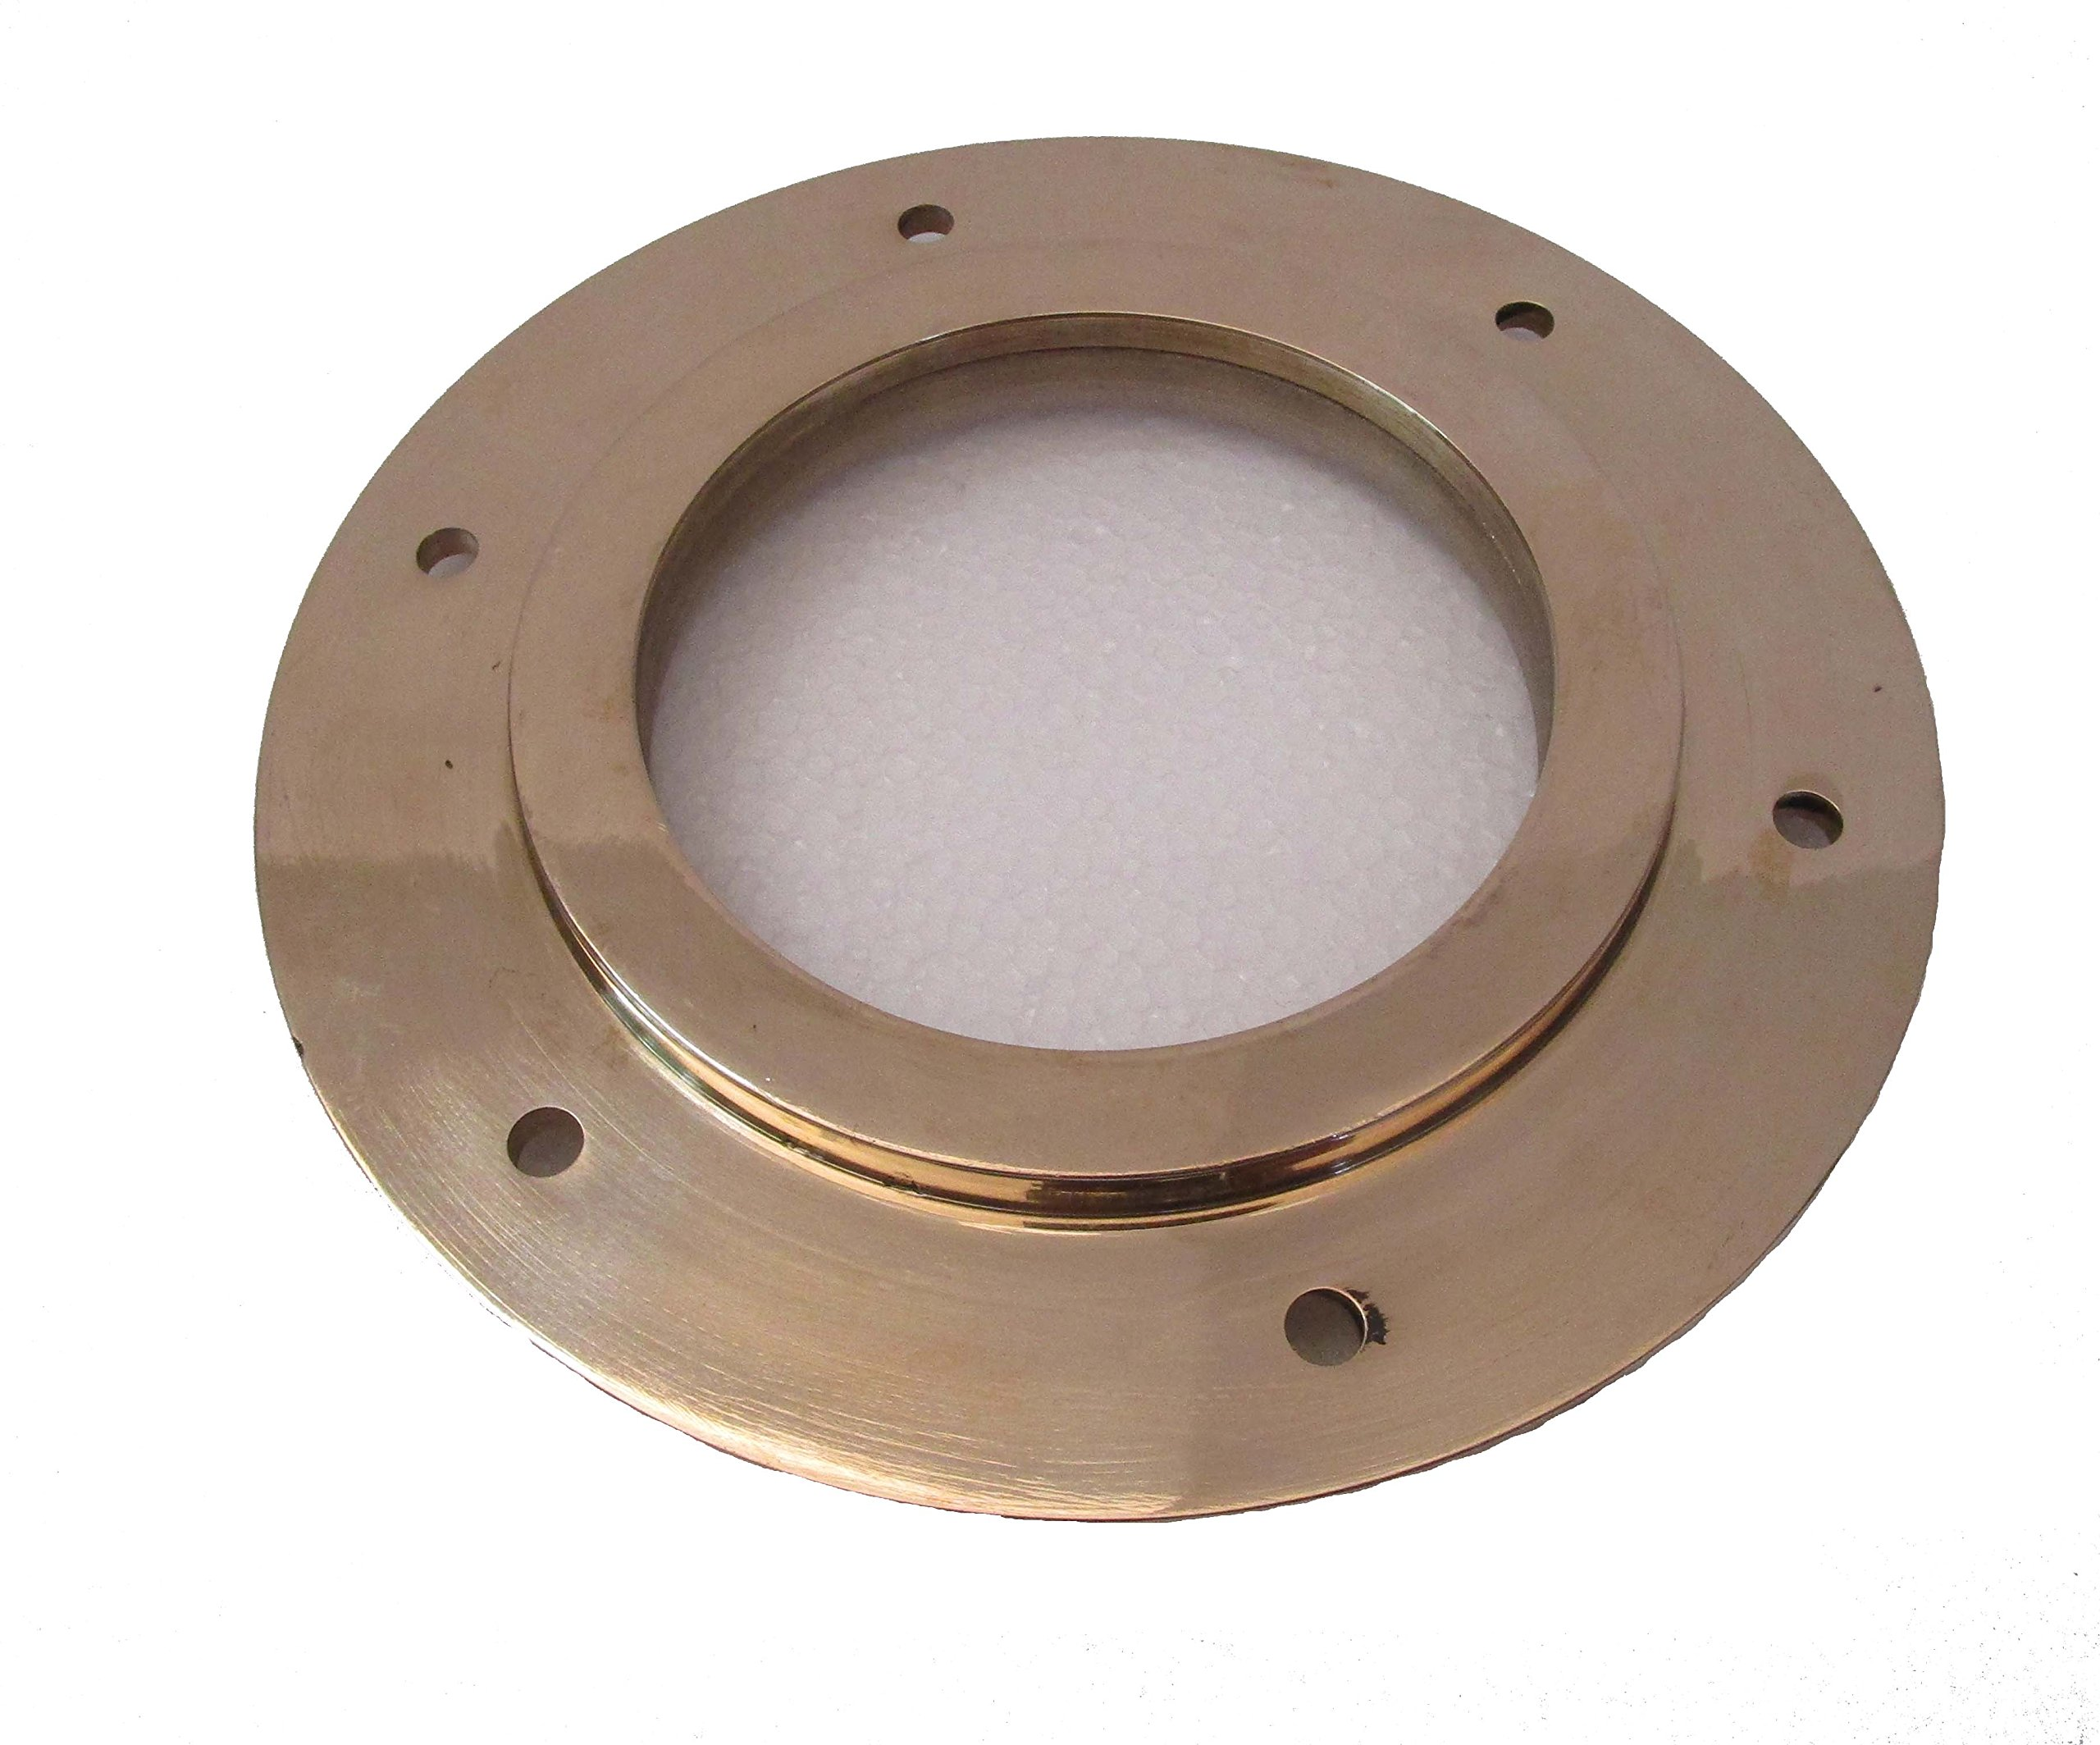 Brass Blessing Marine BRASS Port Hole/Window/Porthole – 7 Inches Outer Nautical/Boat/Maritime (5217)